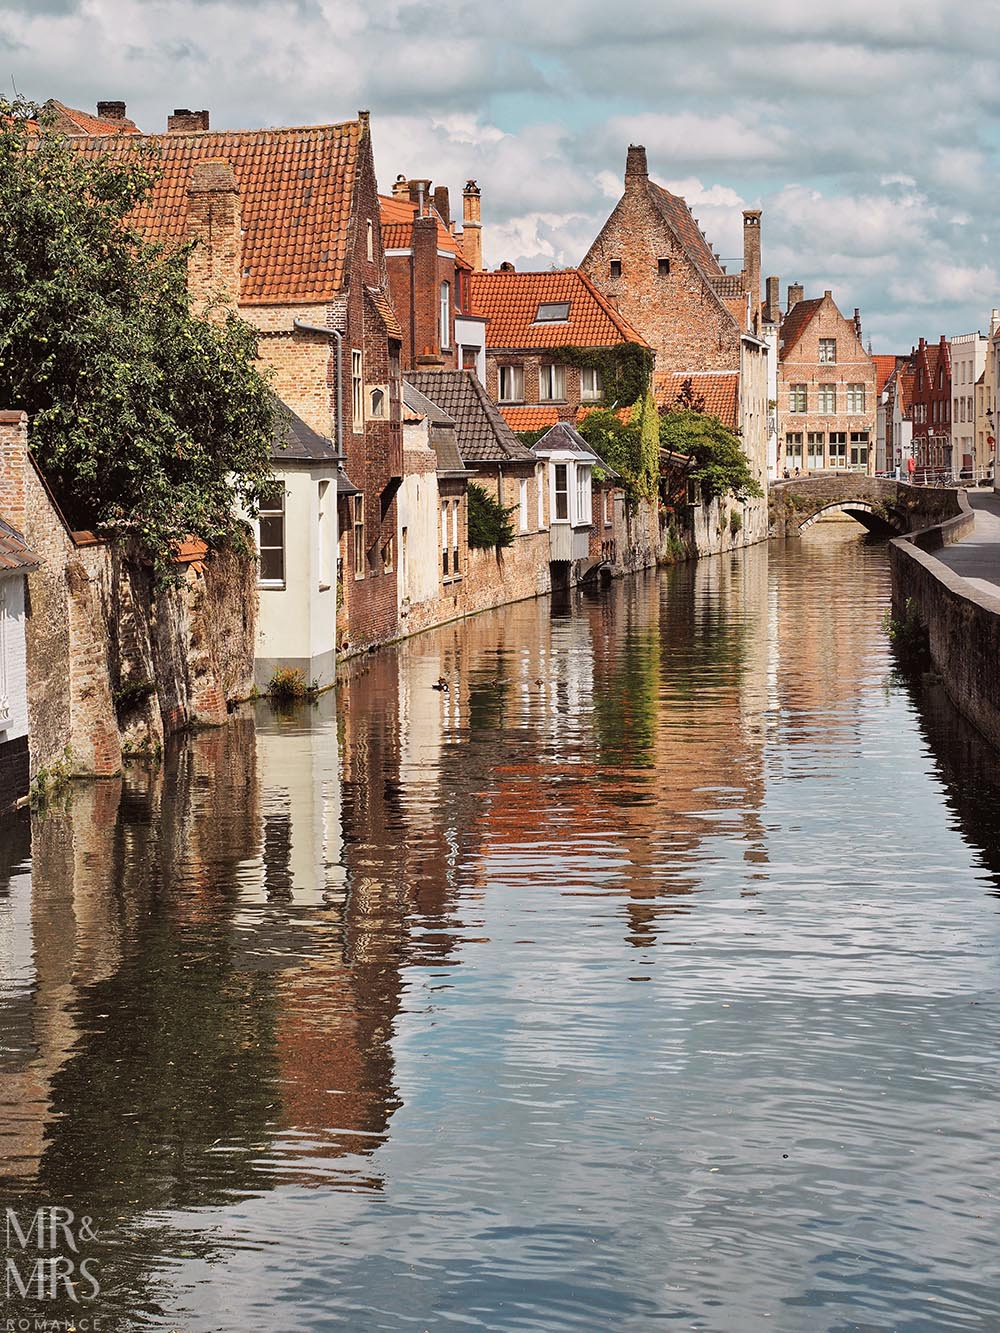 Postcards from Bruges, Belgium - canals and architecture